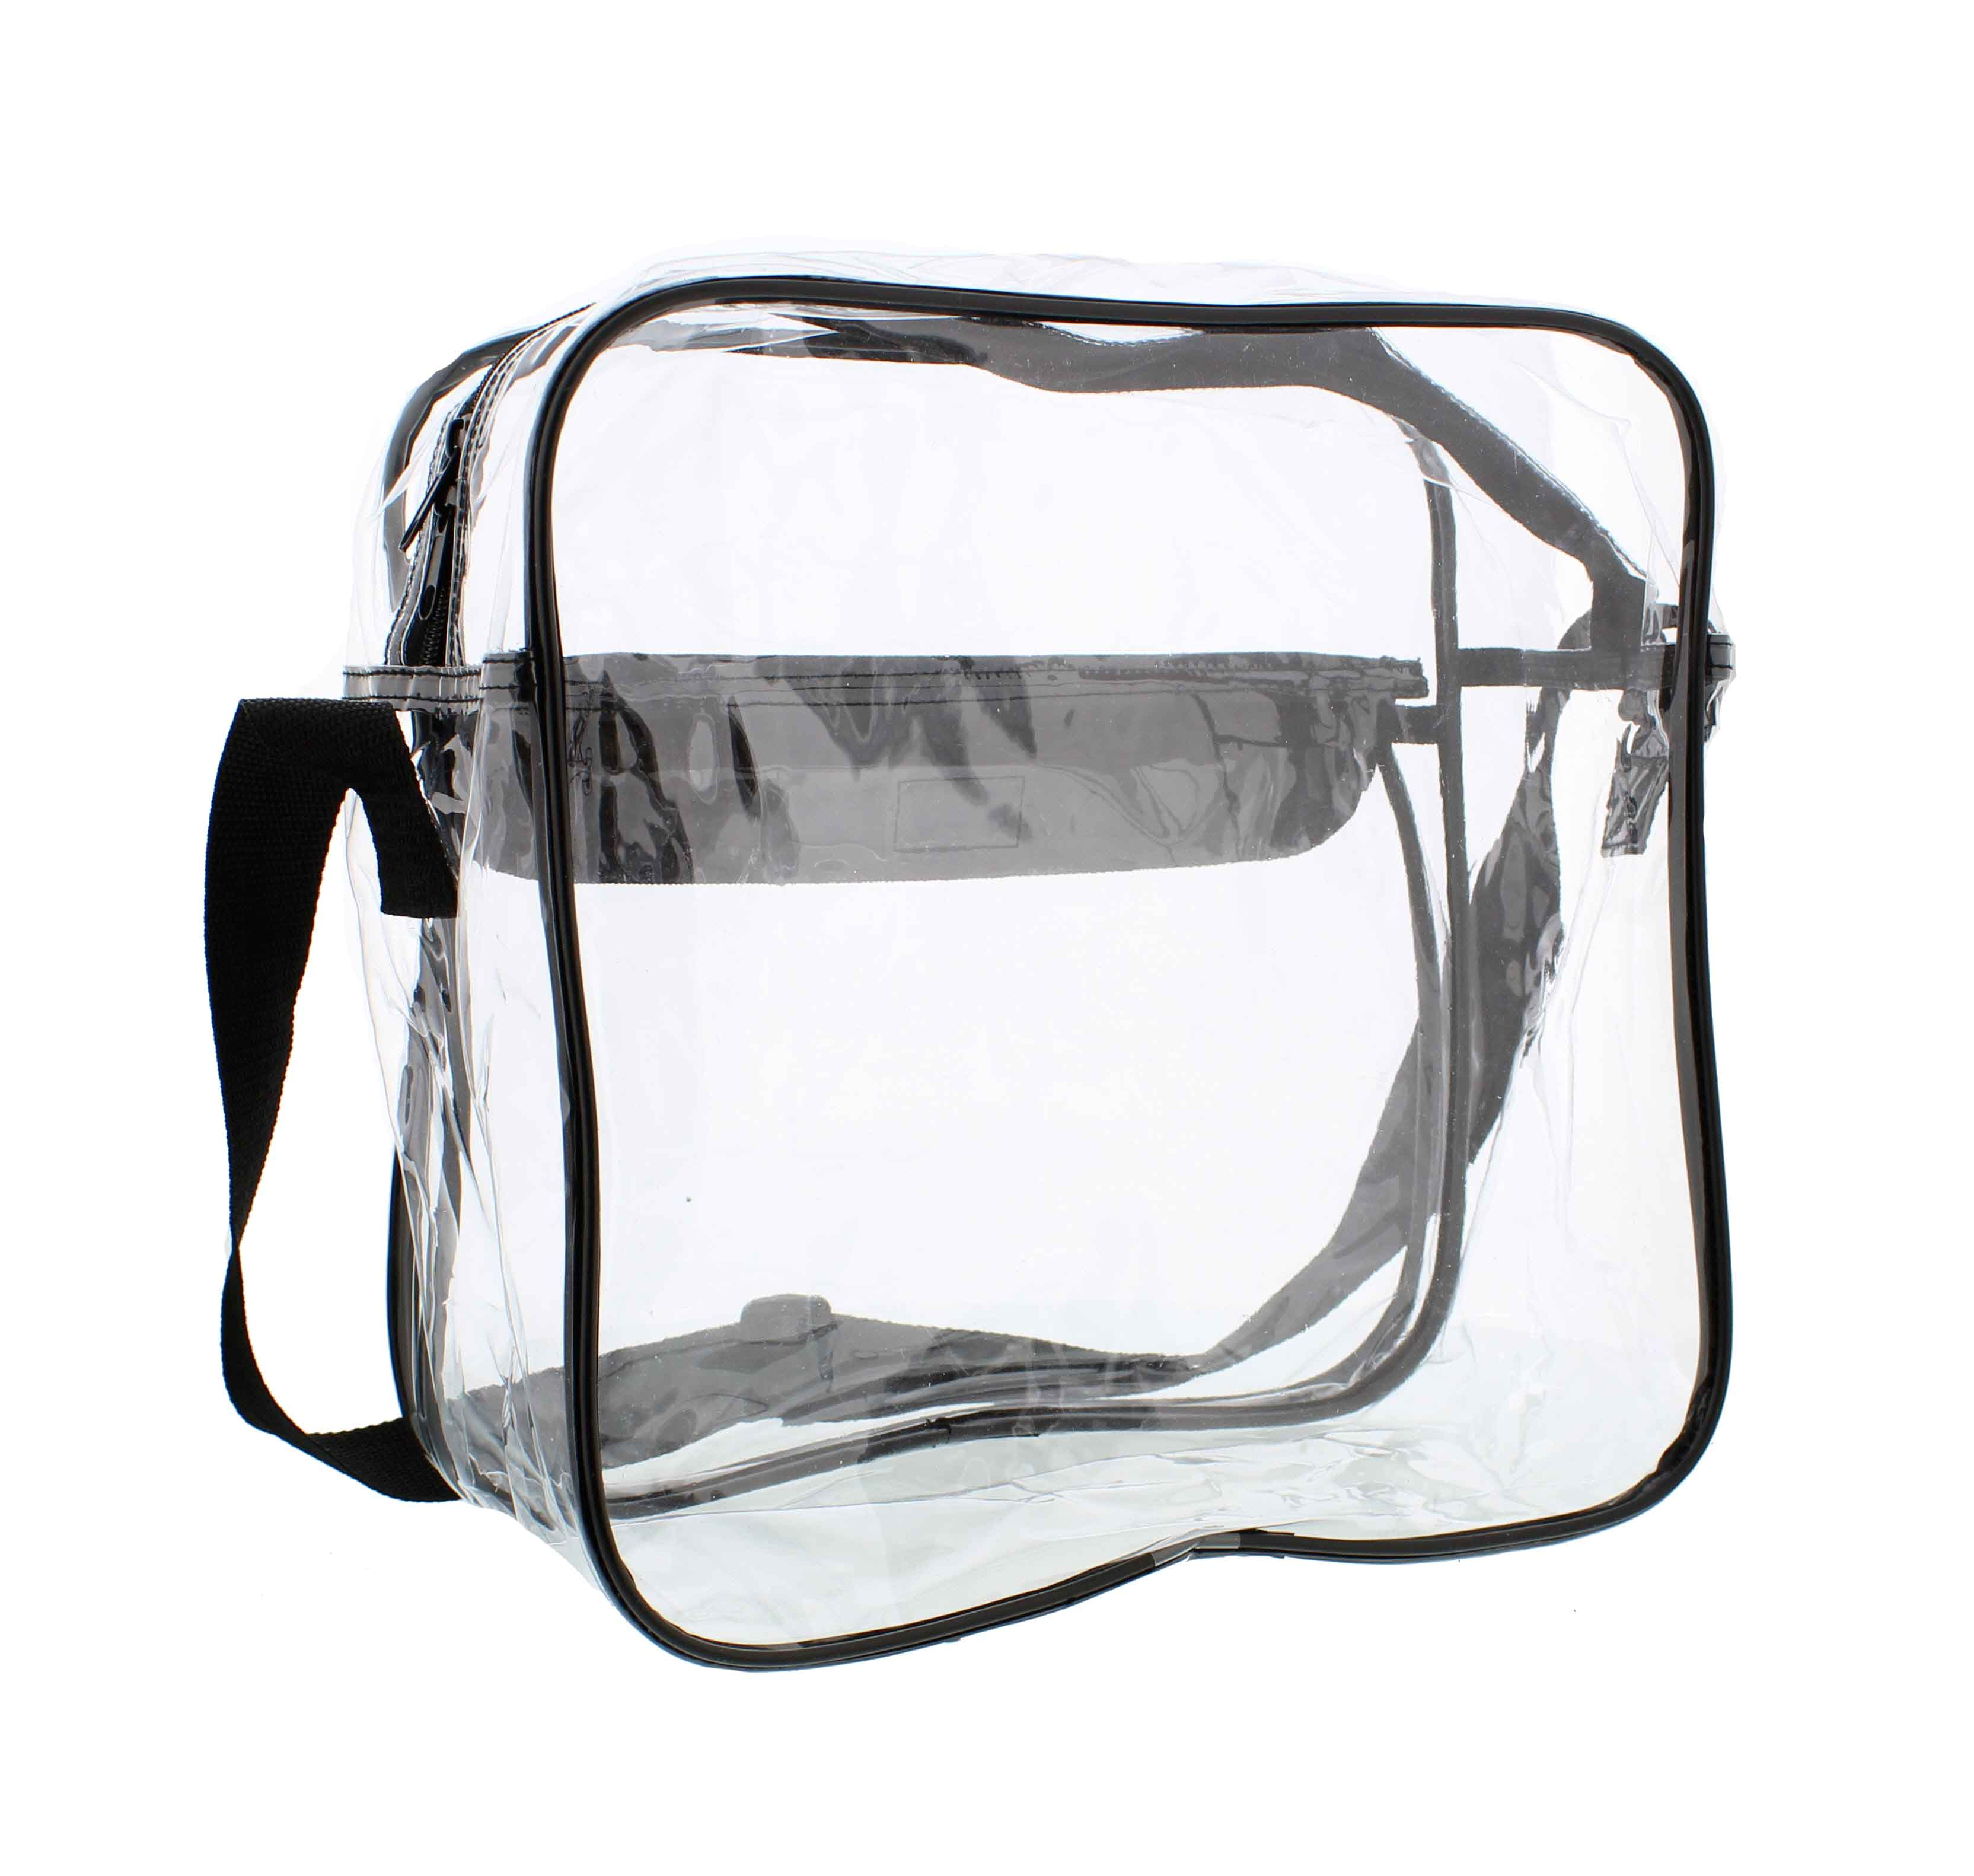 Clear-Purse-NFL-Stadium-Approved-Bag-with-Zipper-and-Shoulder-Strap thumbnail 20